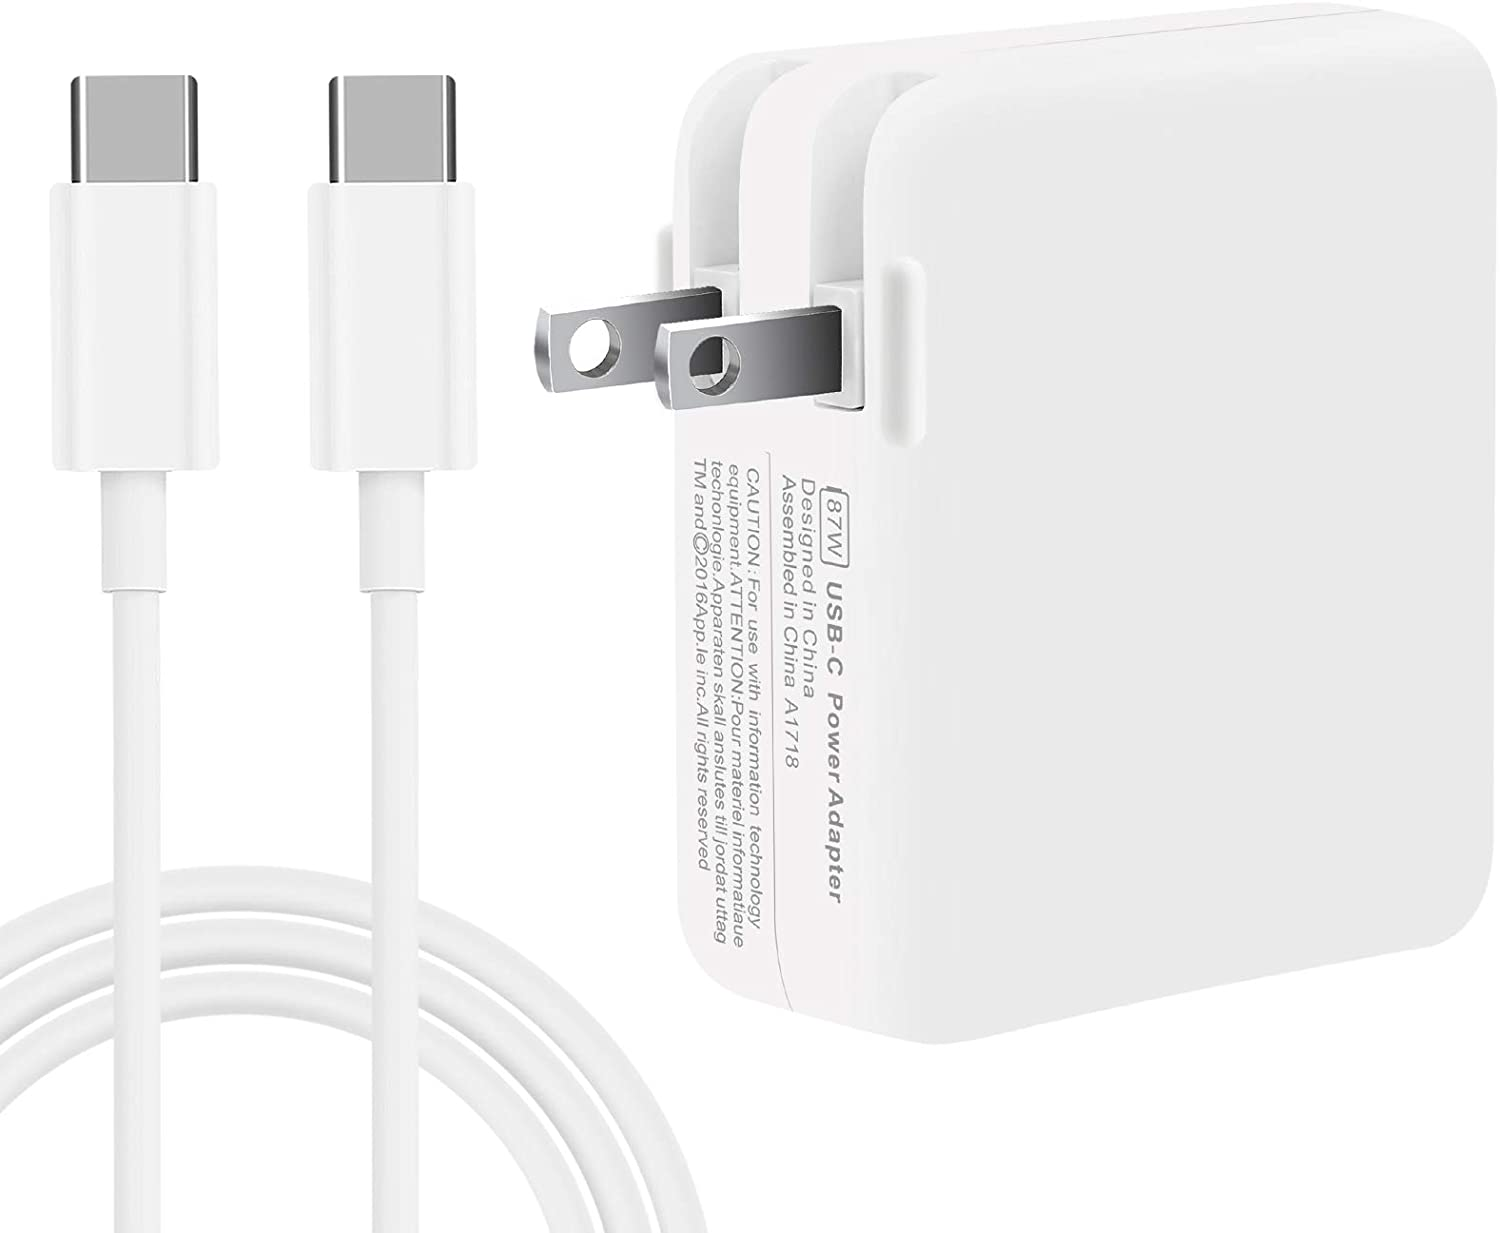 87W Replacement MacBook Pro Charger, 87W USB C Mac Pro Charger Power Adapter Compatible with Mac Book Pro 15 Inch 13 Inch 2018 2019 2020 with Type C Charge Cable